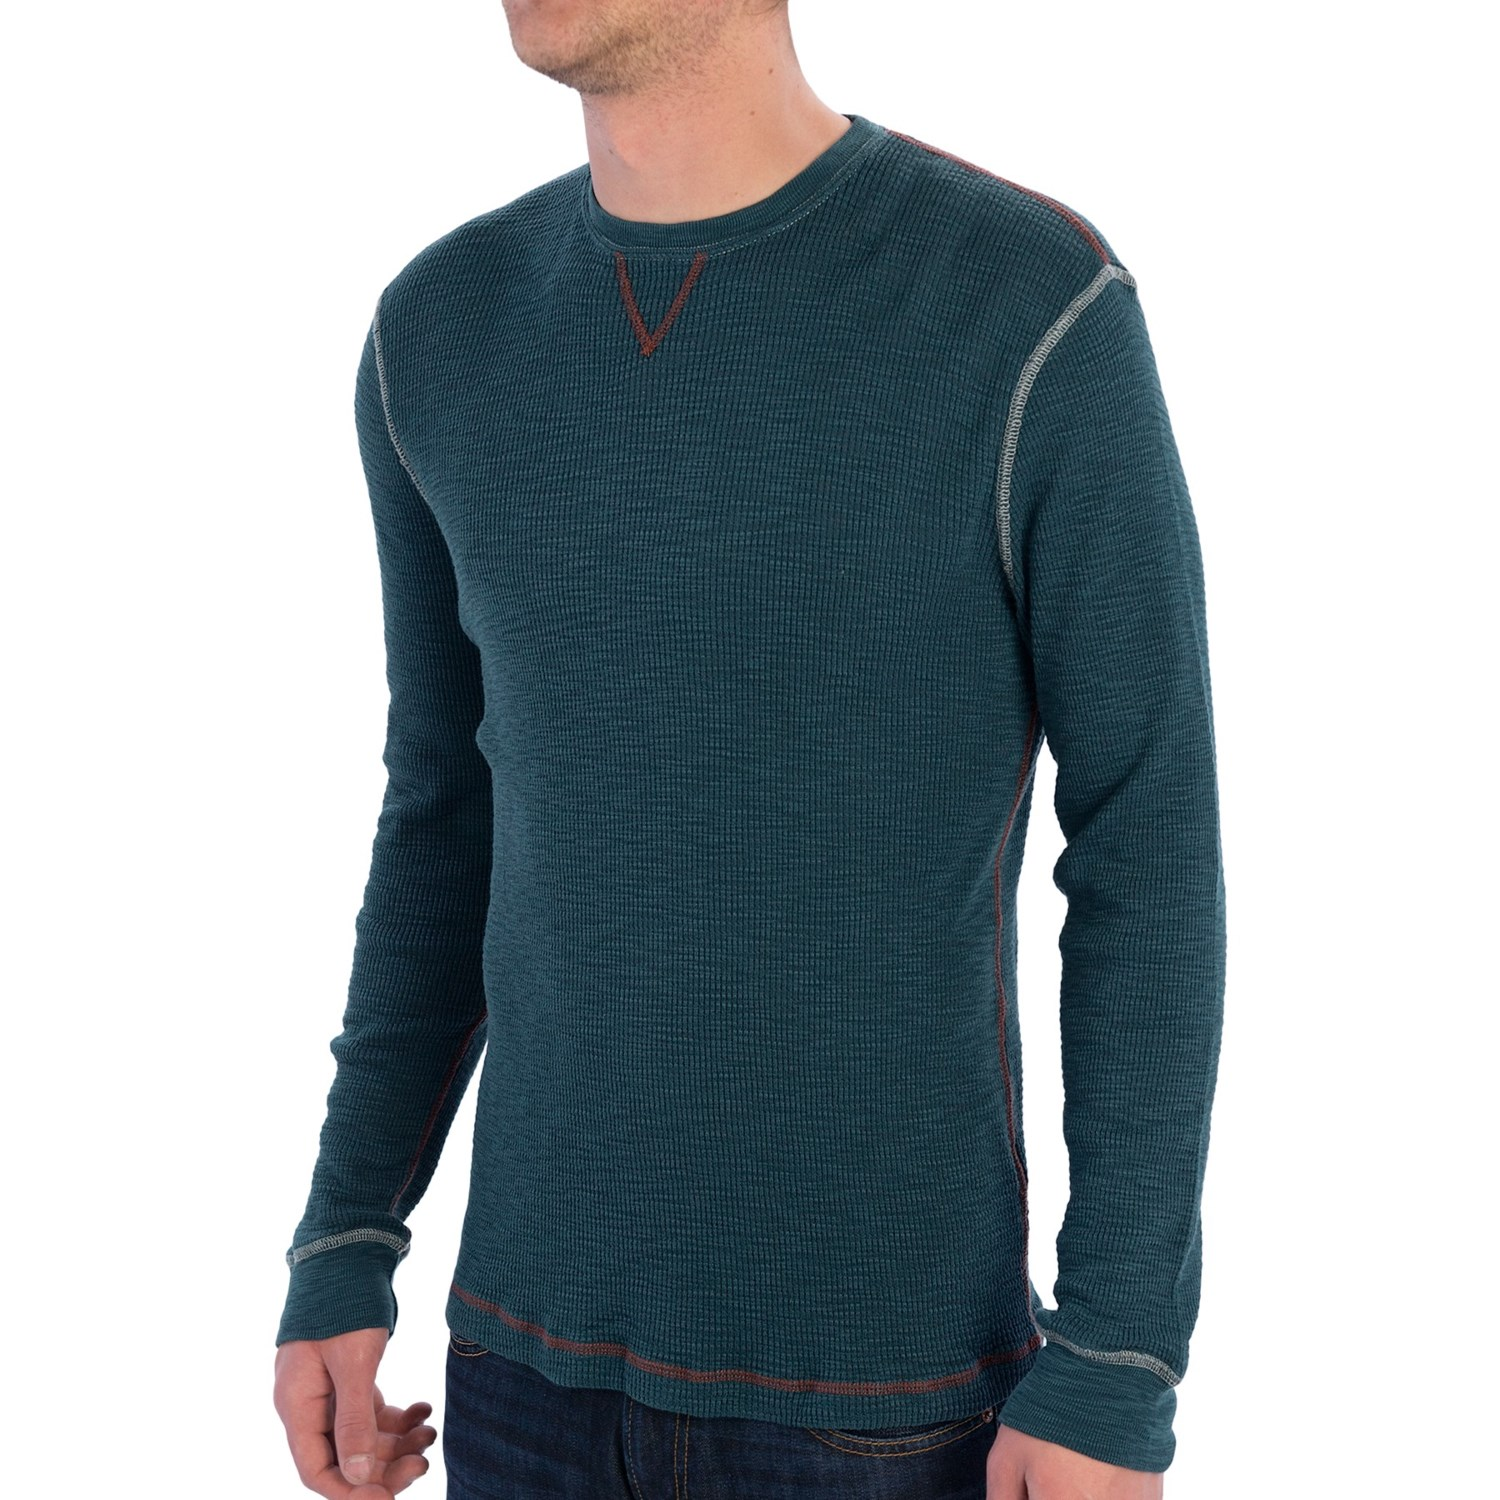 KS Mens Thermal Heavyweight T Shirts Long Sleeve Soft Cotton Crew Neck Big and Tall Knits. from $ 9 99 Prime. out of 5 stars 5. Wolverine. Men's Rykker Baseball Style Blended Thermal 3 Button Henley Shirt. from $ 9 99 Prime. out of 5 stars Duofold. Men's Mid Weight Wicking Thermal Shirt.